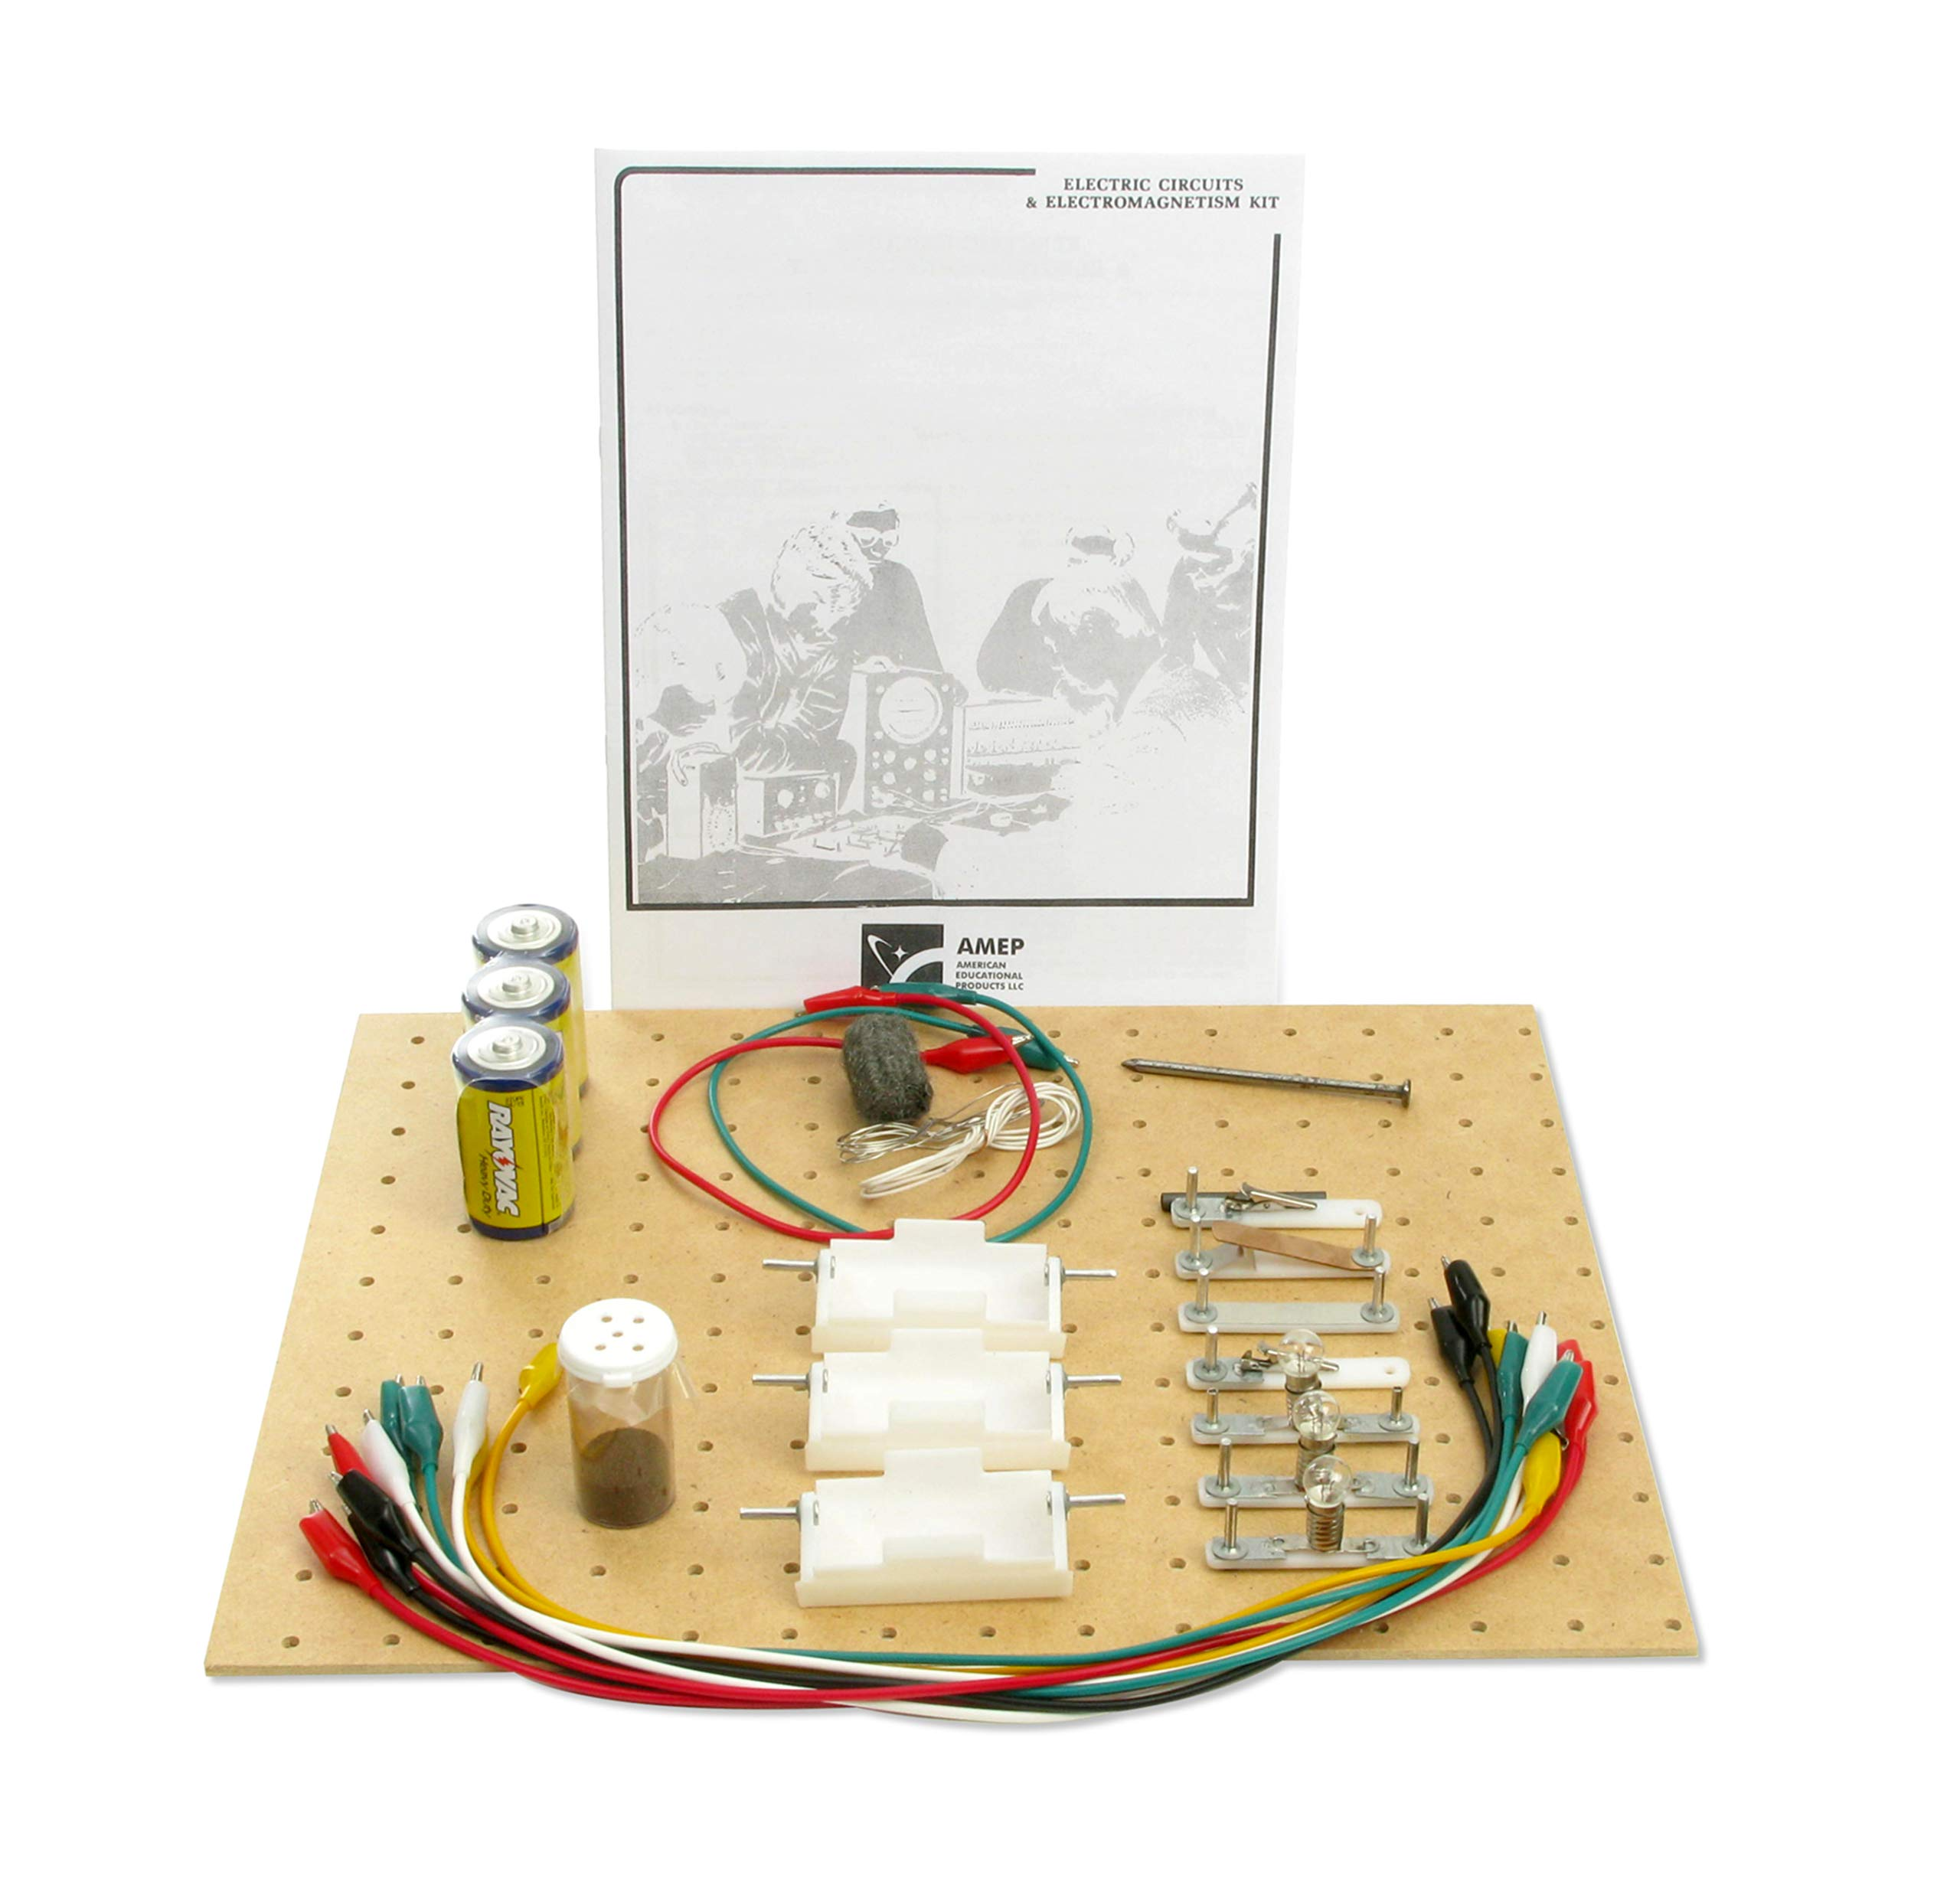 American Educational Circuits and Electromagnetism Kit